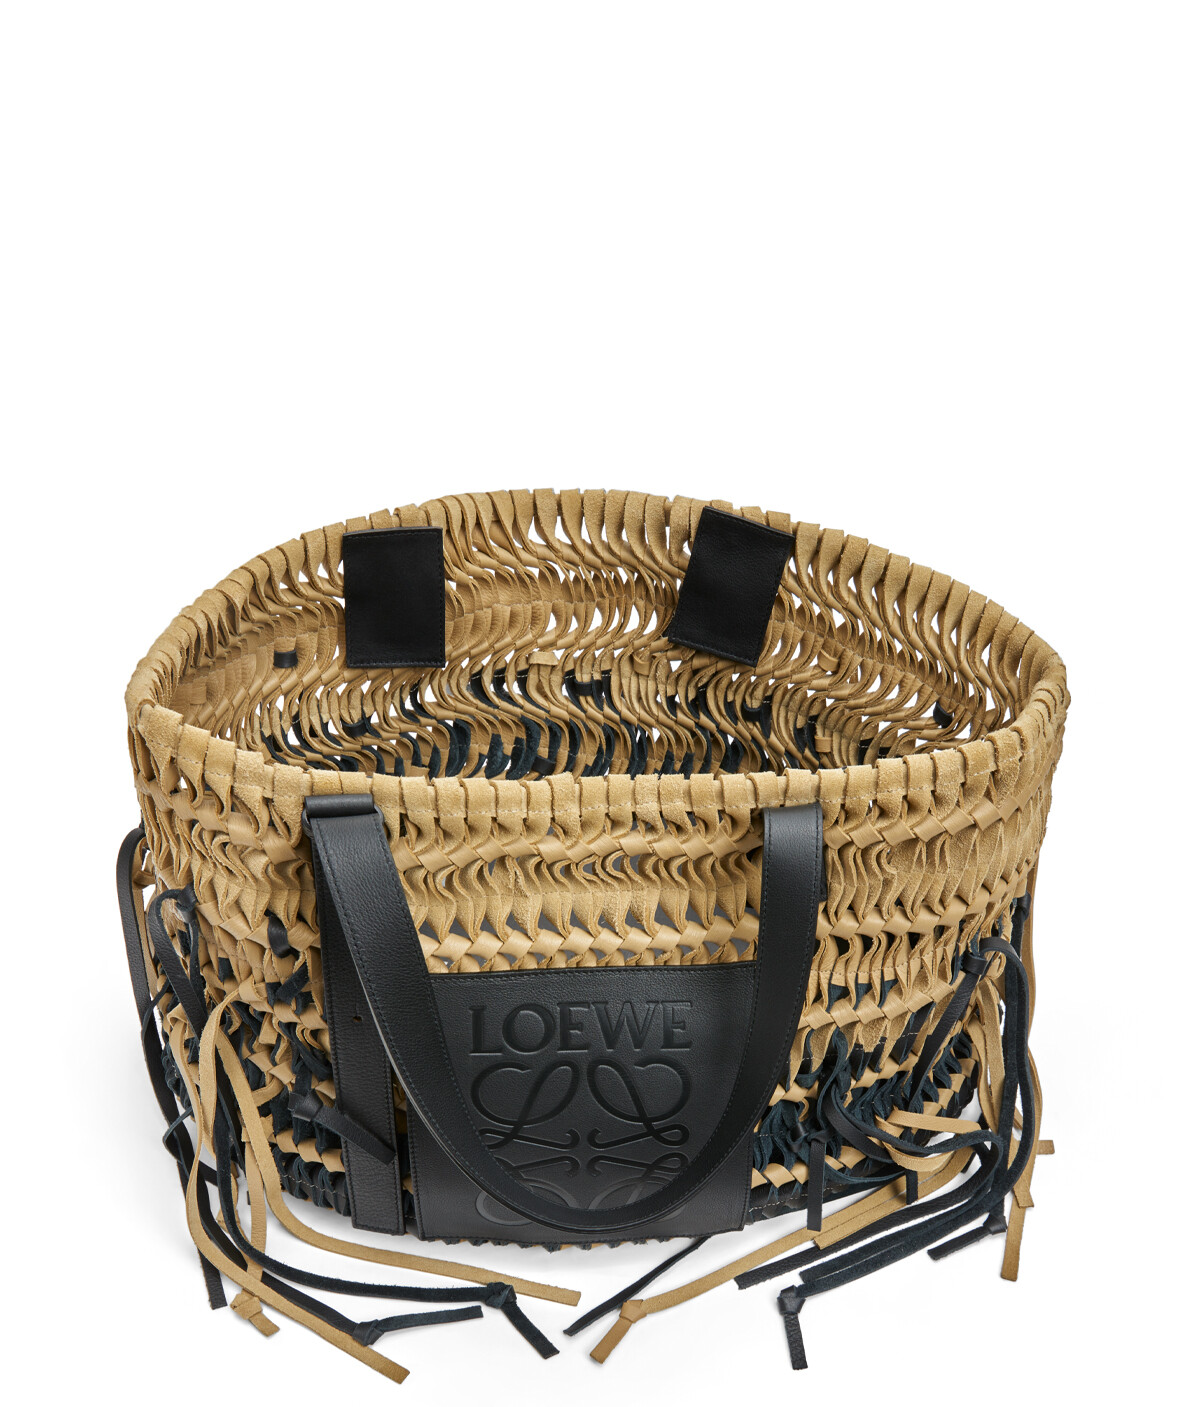 LOEWE Woven Tote Bag Gold/Black front